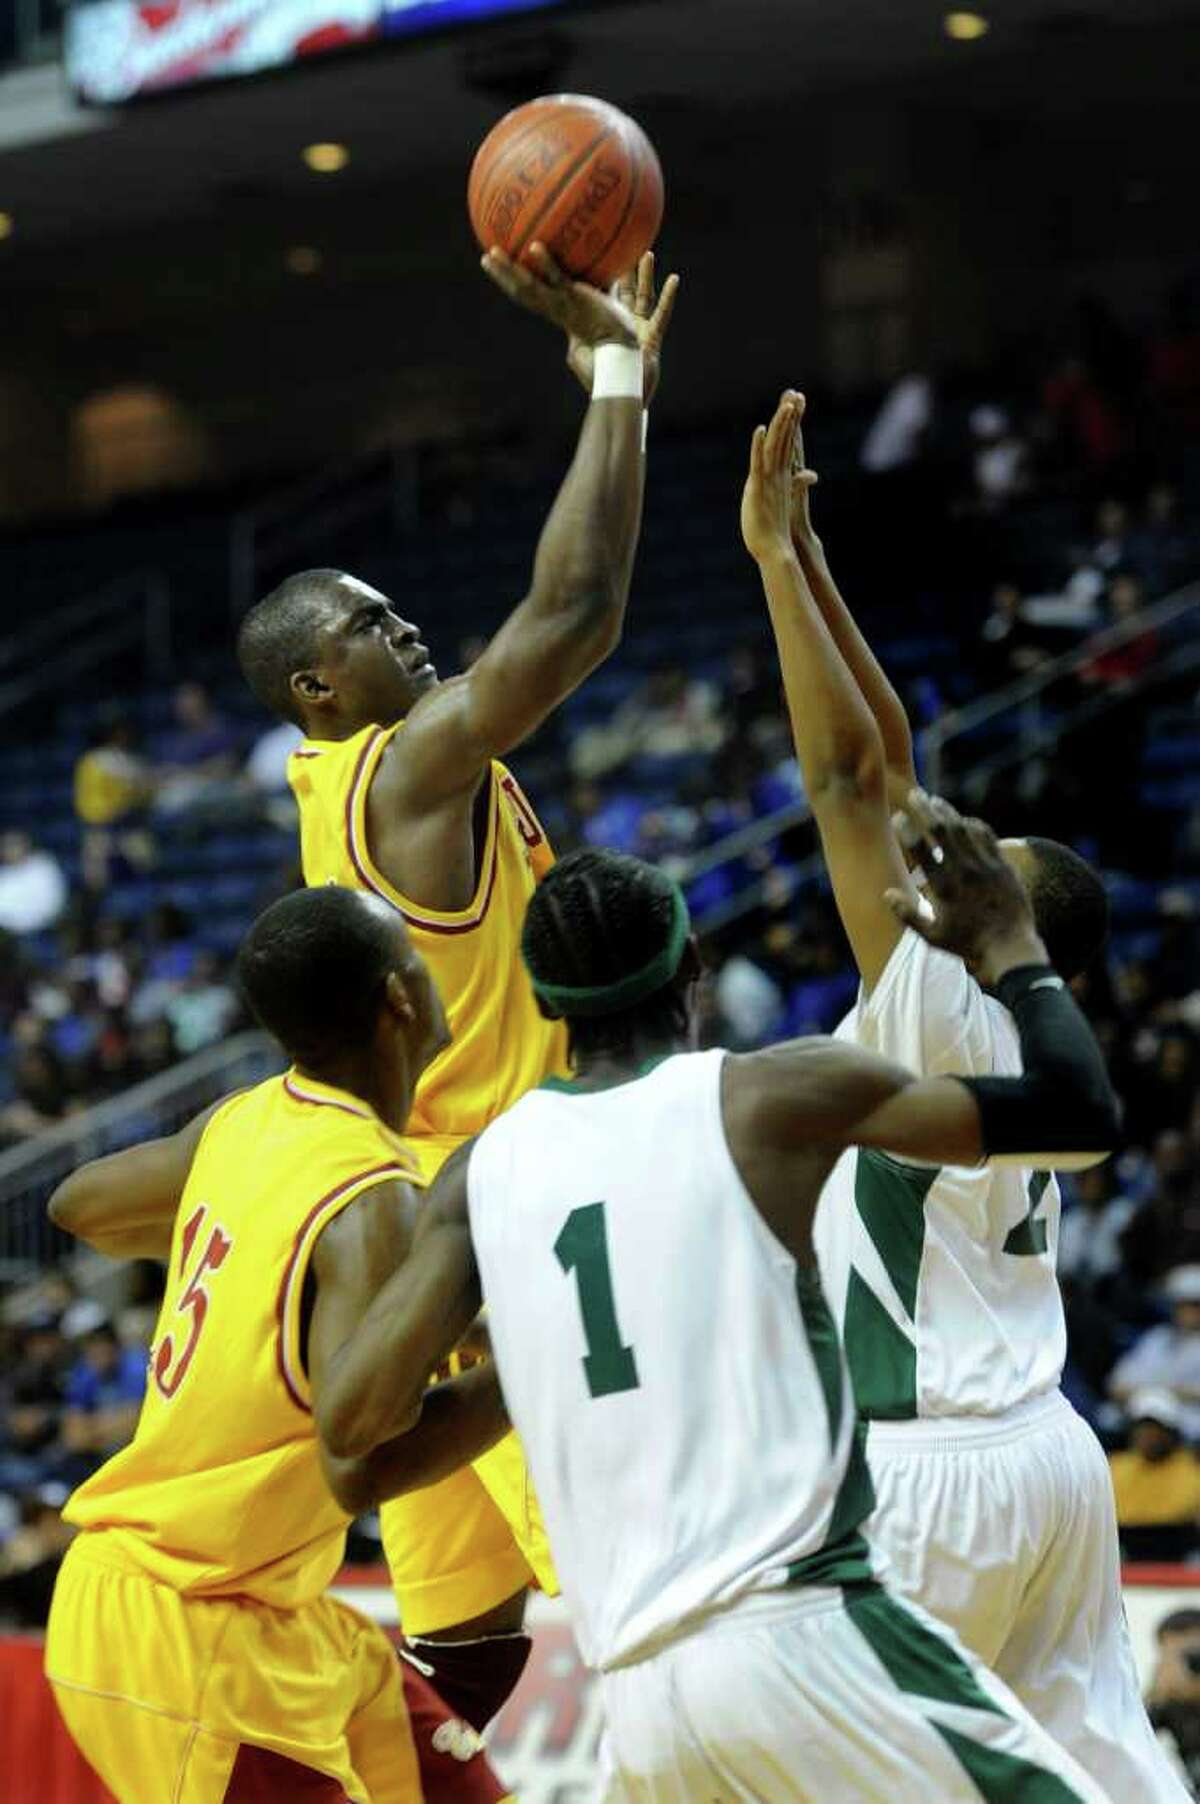 St. Joseph's Oscar Assie puts up a shot during Thursday's game at Webster Bank Arena at Harbor Yard on February 17, 2011.